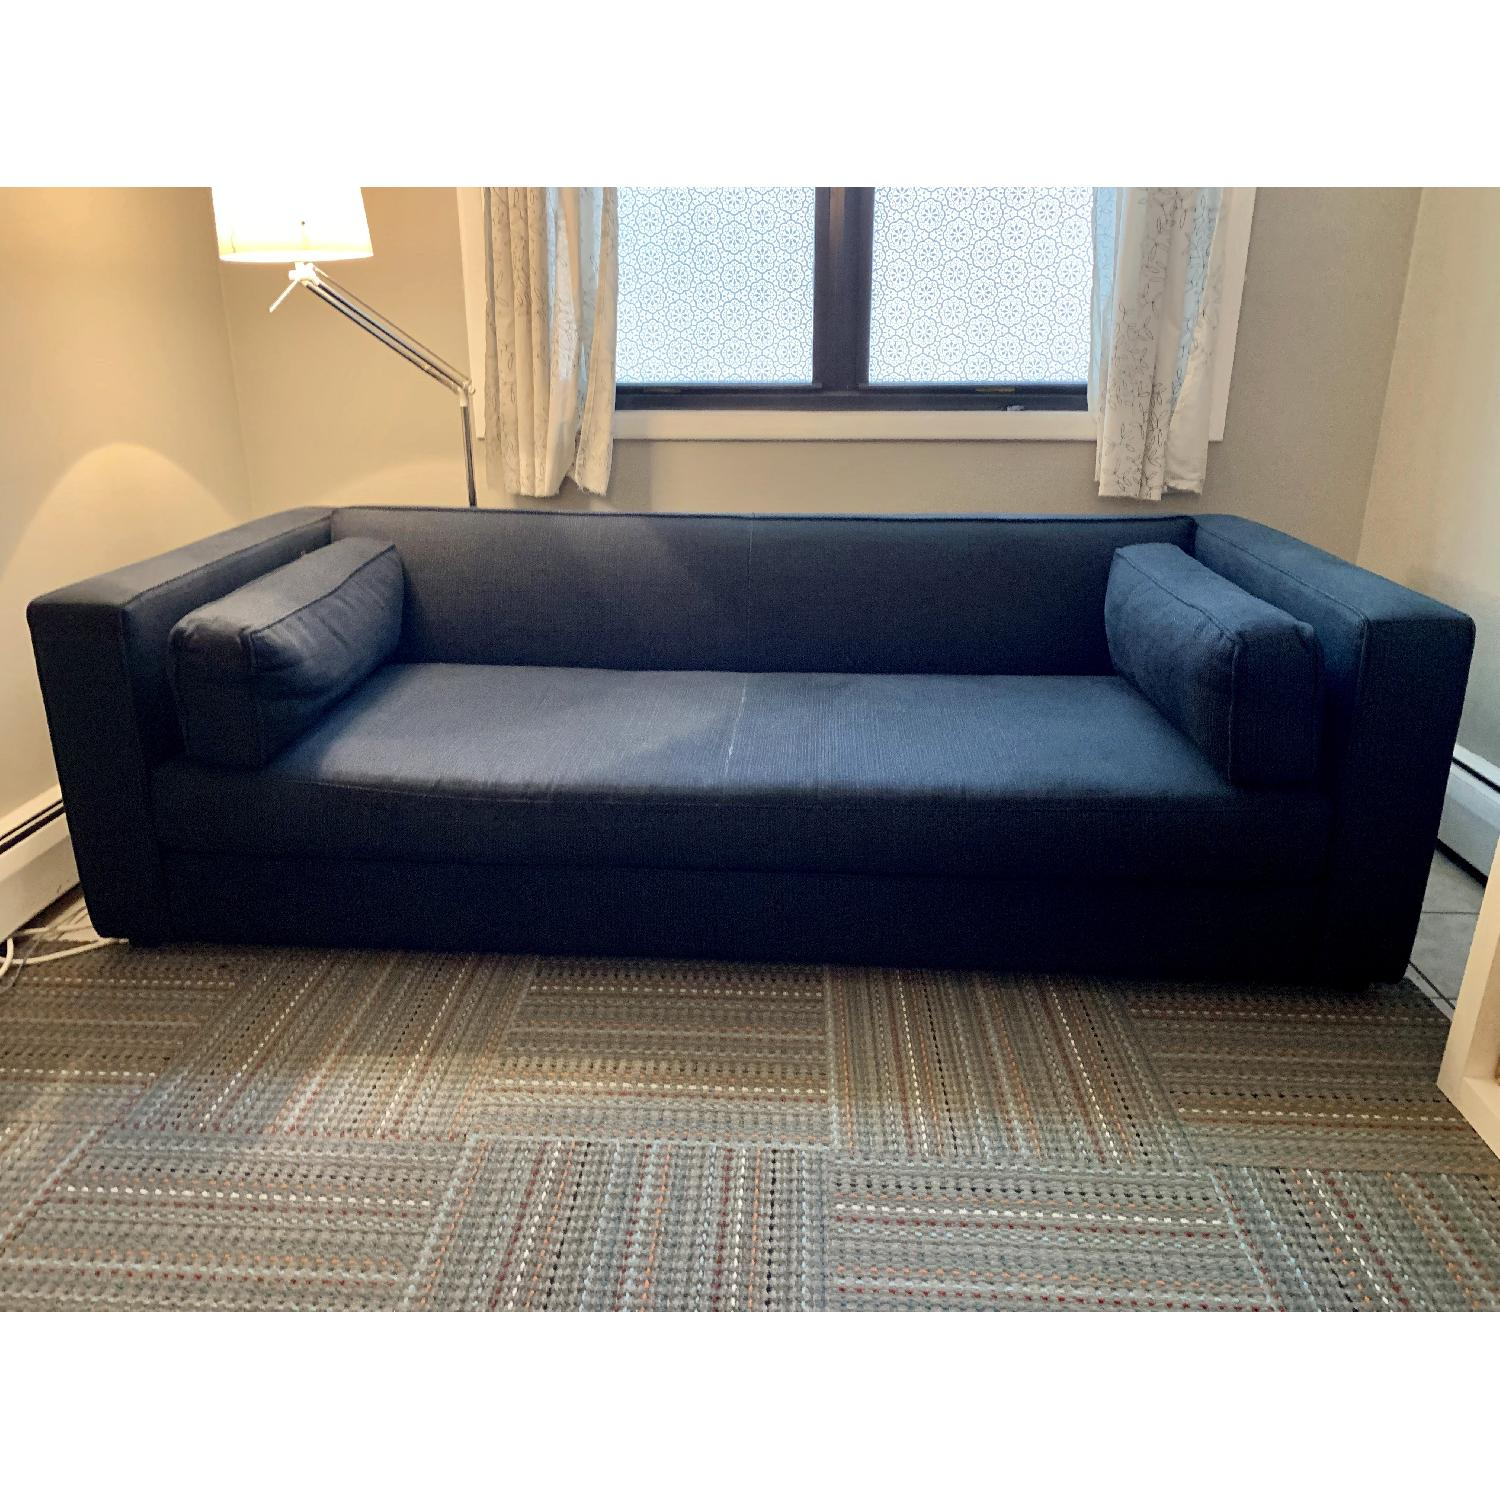 Crate & Barrel Dark Blue/Navy Fabric Sofa-0